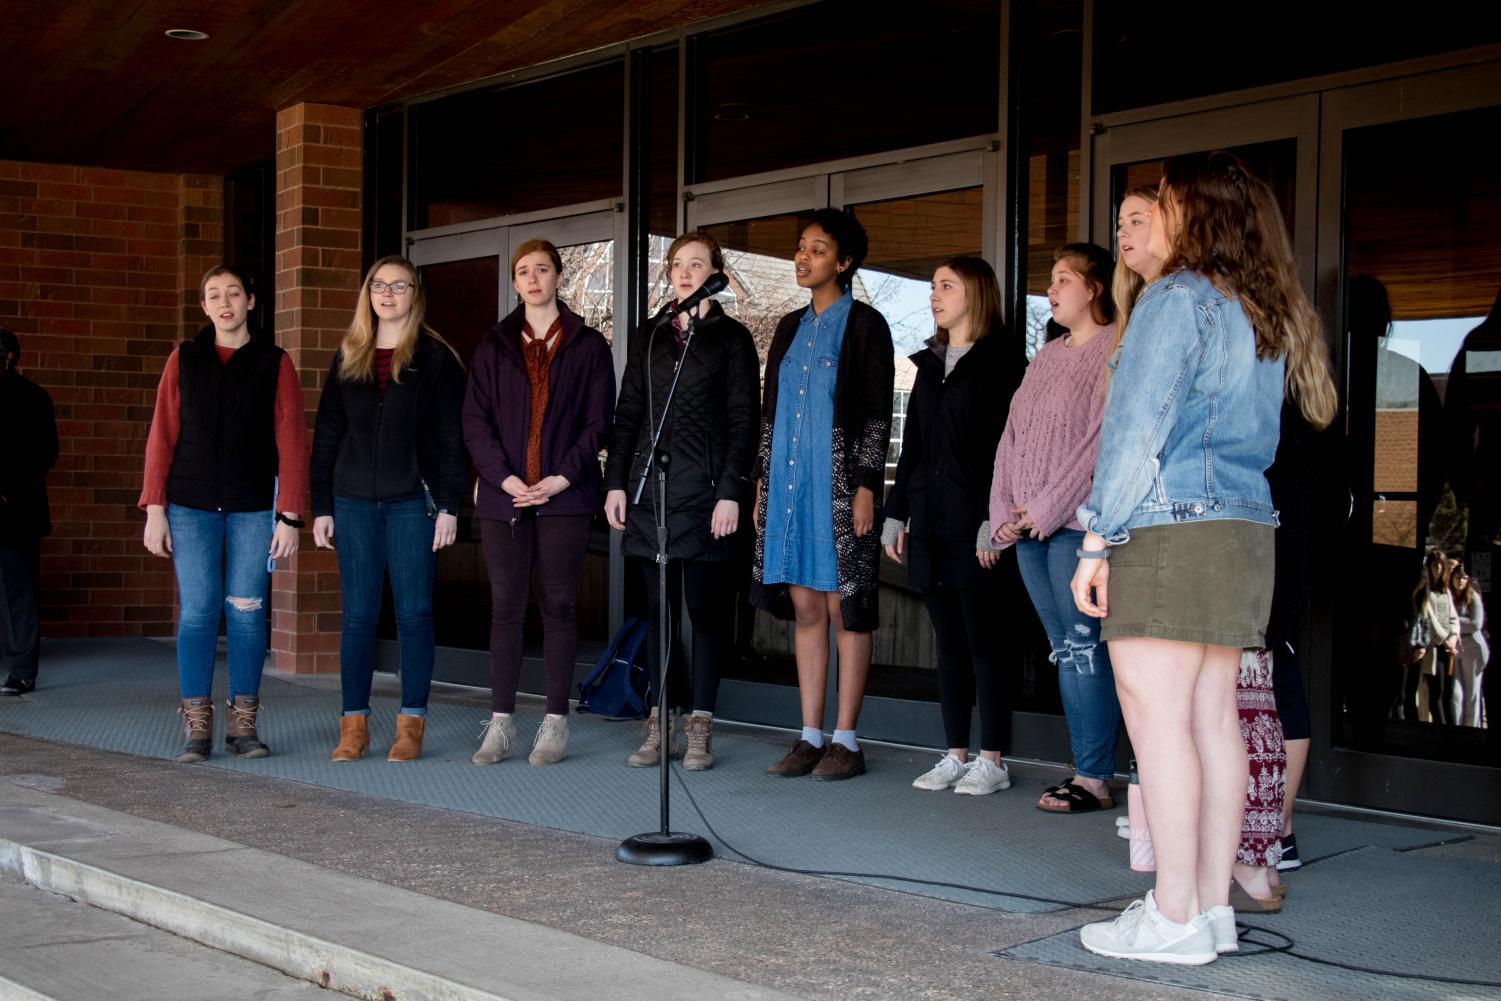 A capella group, Beautiful Mess, performs a song in support of the victims being honored at the vigil.